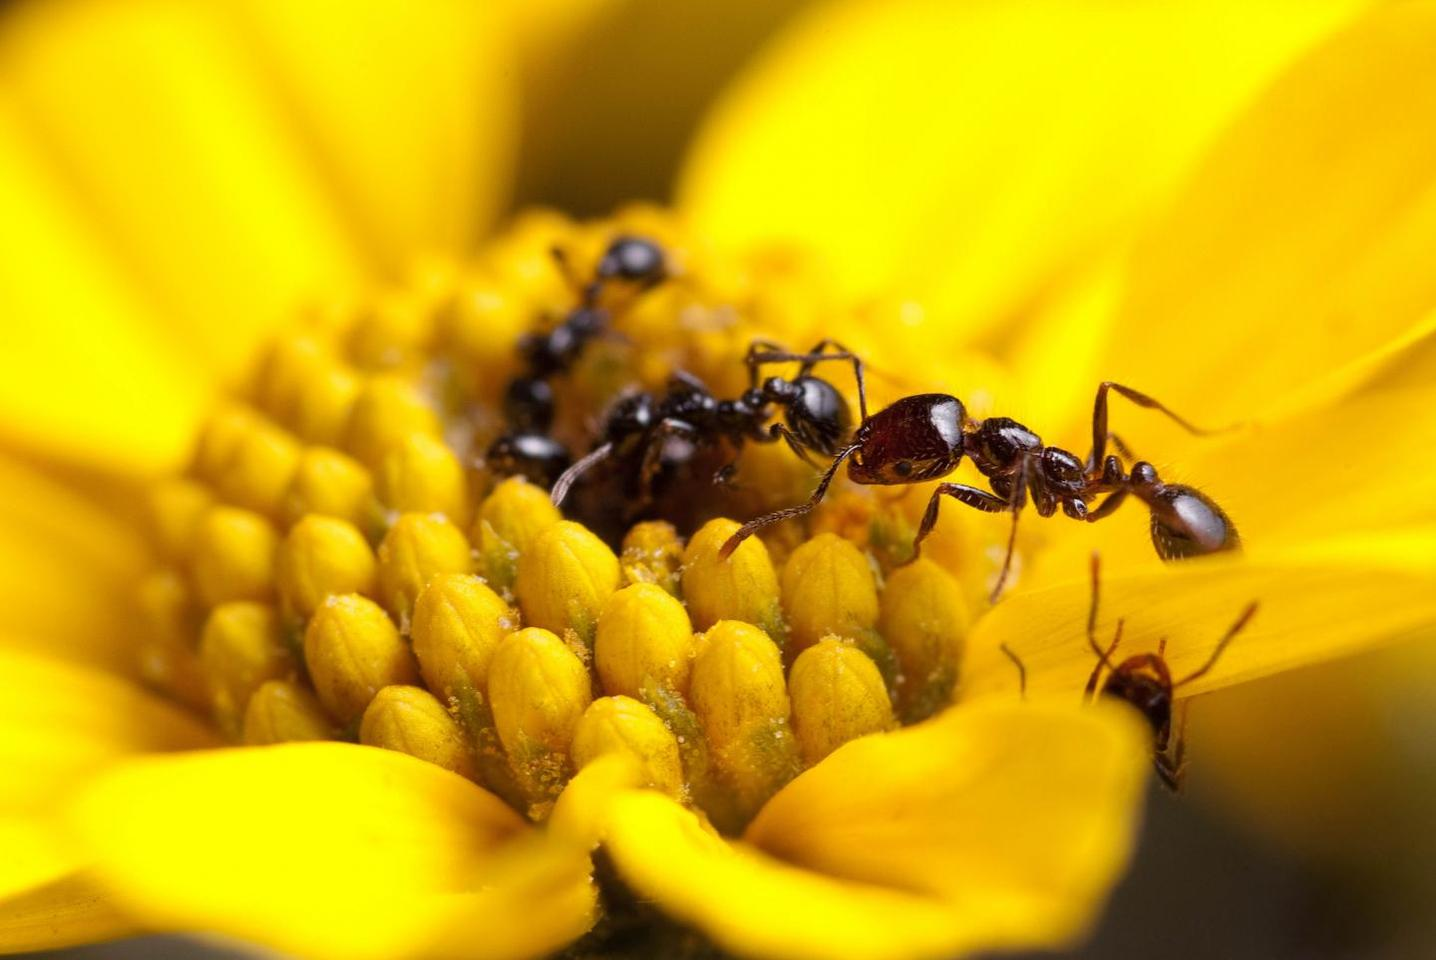 The desert fire ant, Solenopsis xyloni, was found to produce some of the strongest antimicrobials measured in social insects